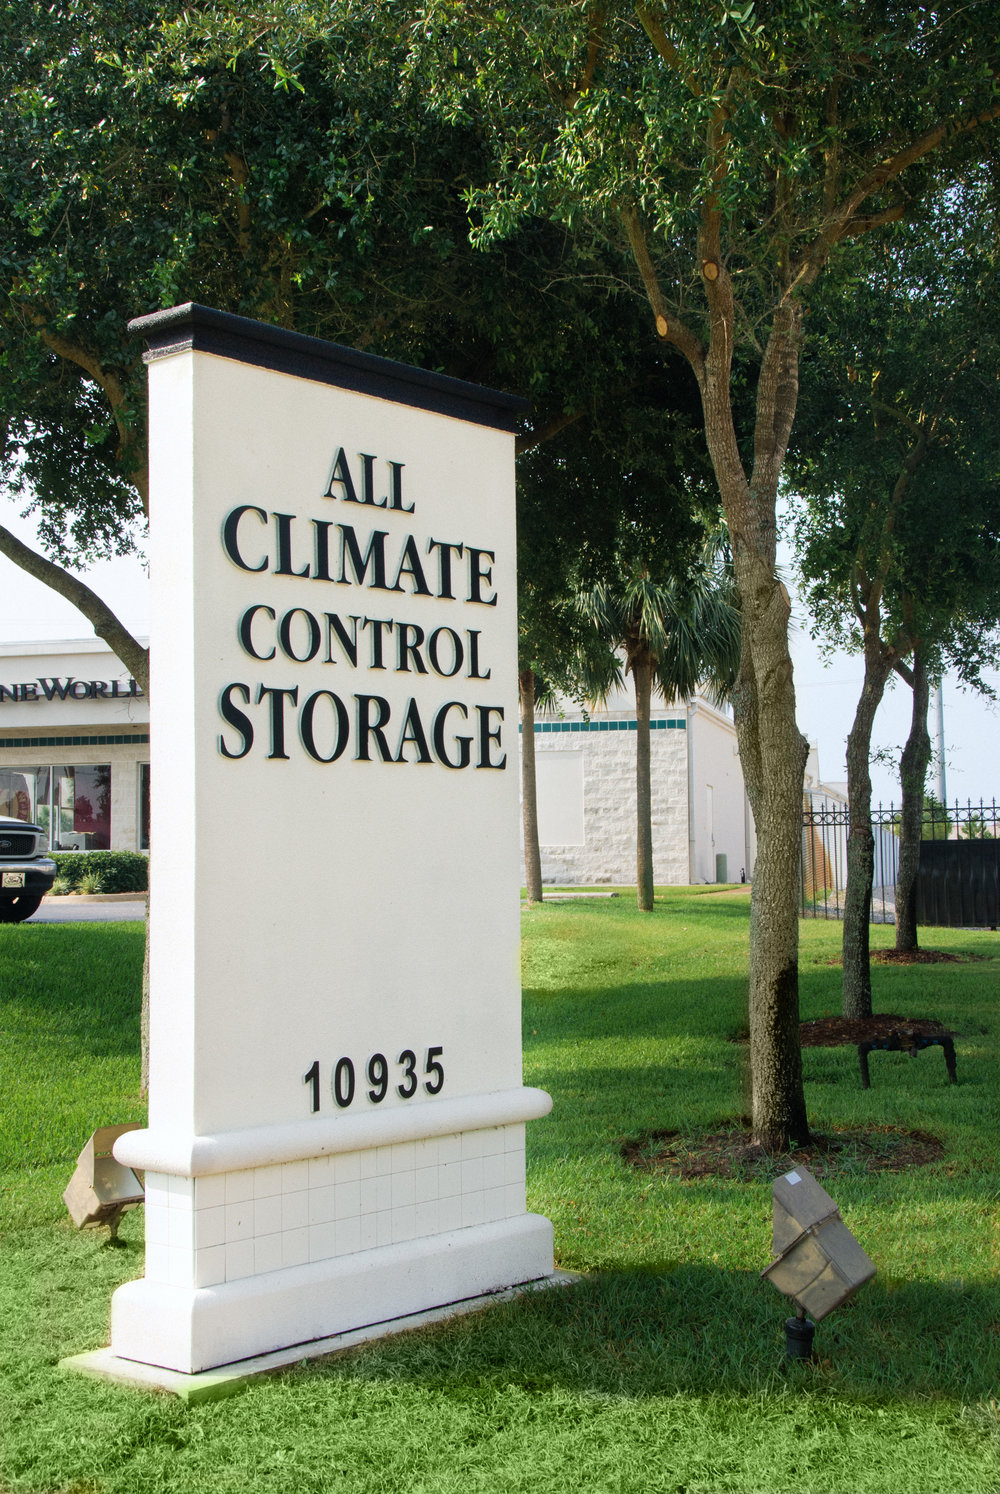 All Climate Controlled Storage